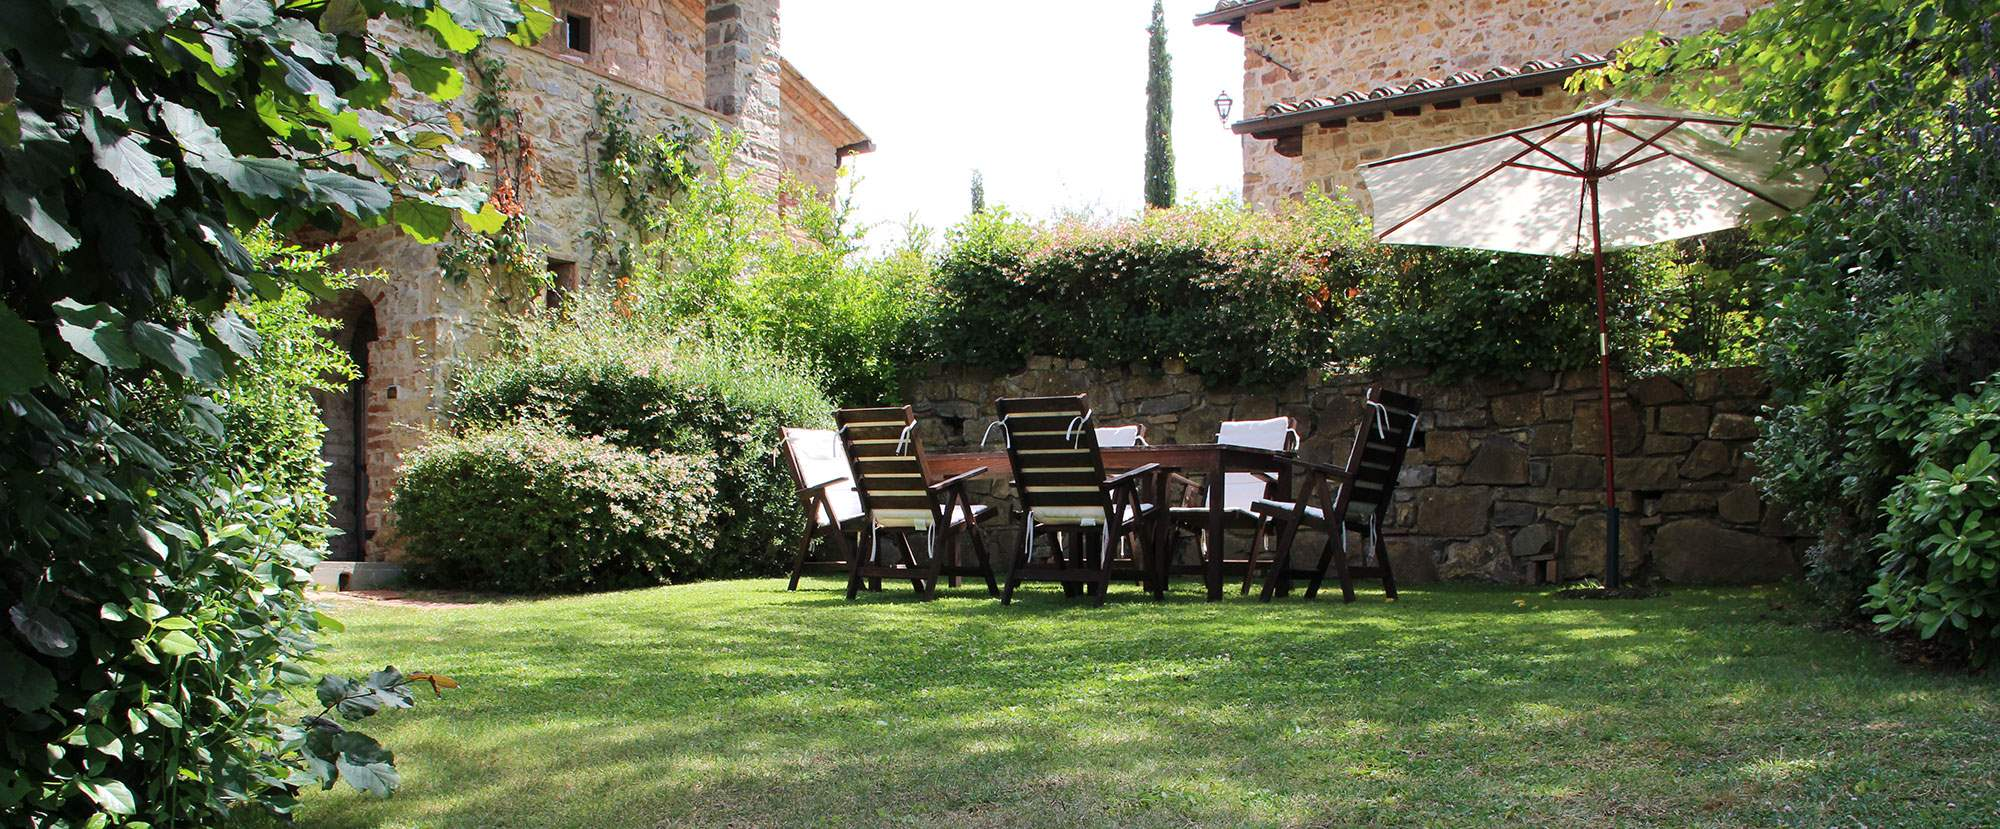 Casa Ferruzzi 2, 3 bedroom apartment in Chianti & Countryside, Tuscany Photo #13